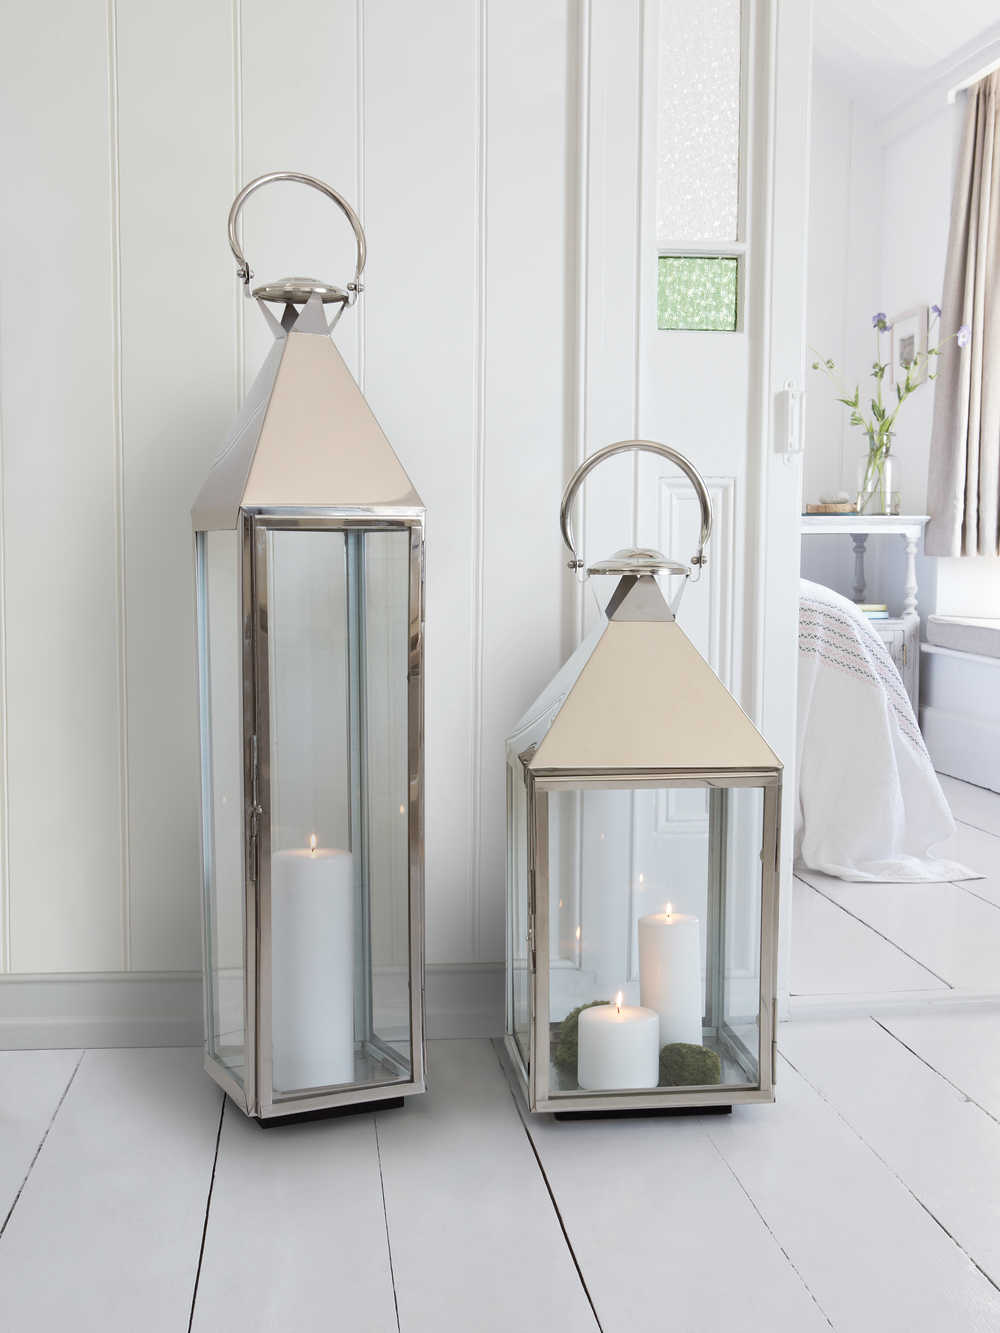 Big Stainless Steel Lanterns Large Candle Lanterns Large Lantern